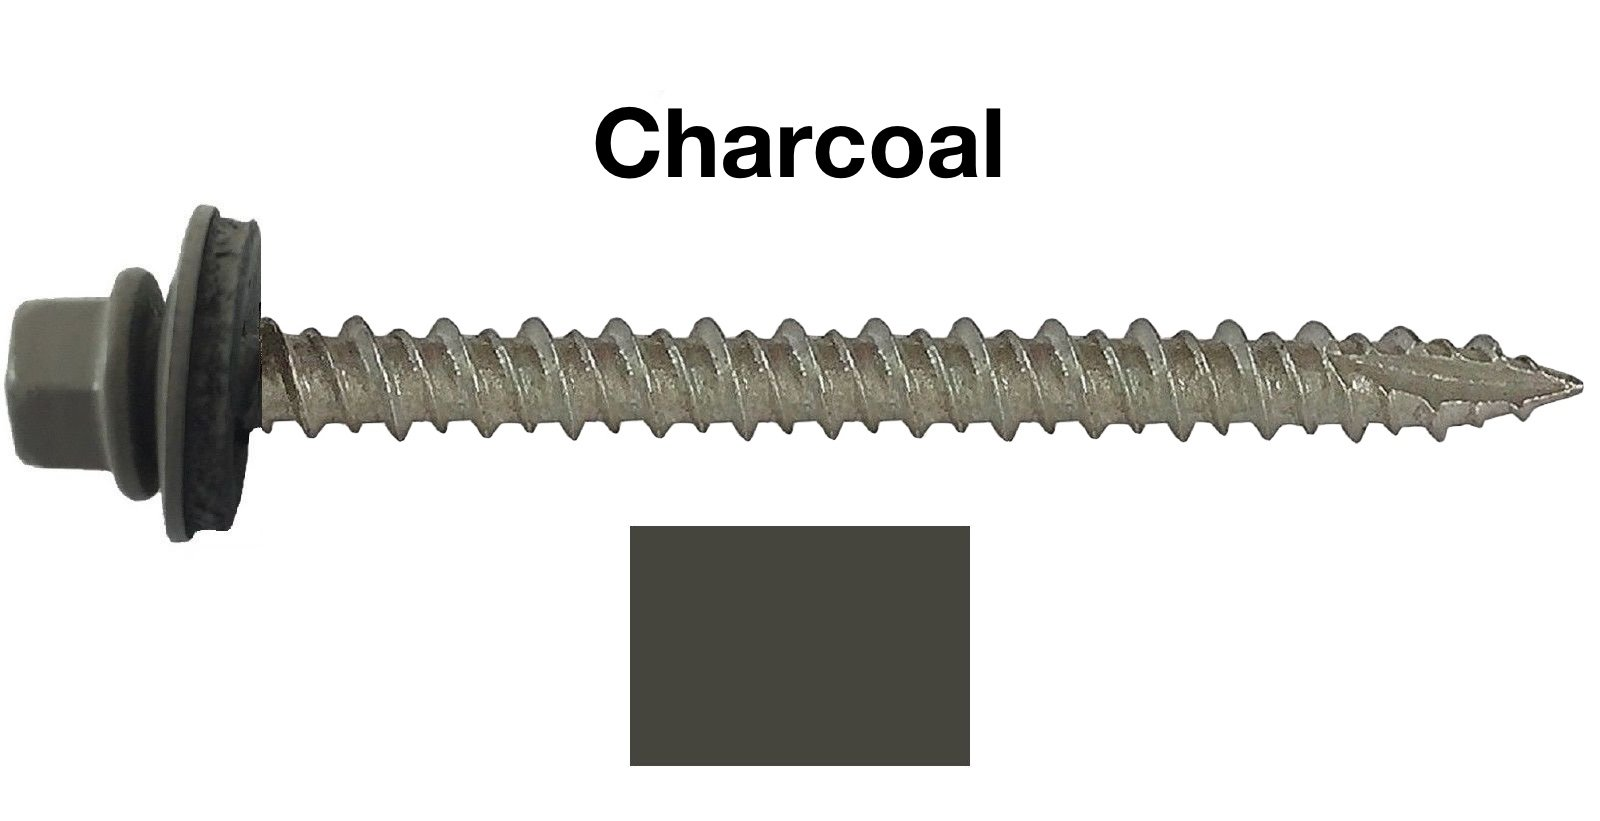 "#10 Metal ROOFING SCREWS: (250) Screws x 3"" CHARCOAL Hex Head Sheet Metal Roof Screw. Self starting/tapping metal to wood, sheet metal siding screws ~ EPDM washer ~For corrugated roofing"